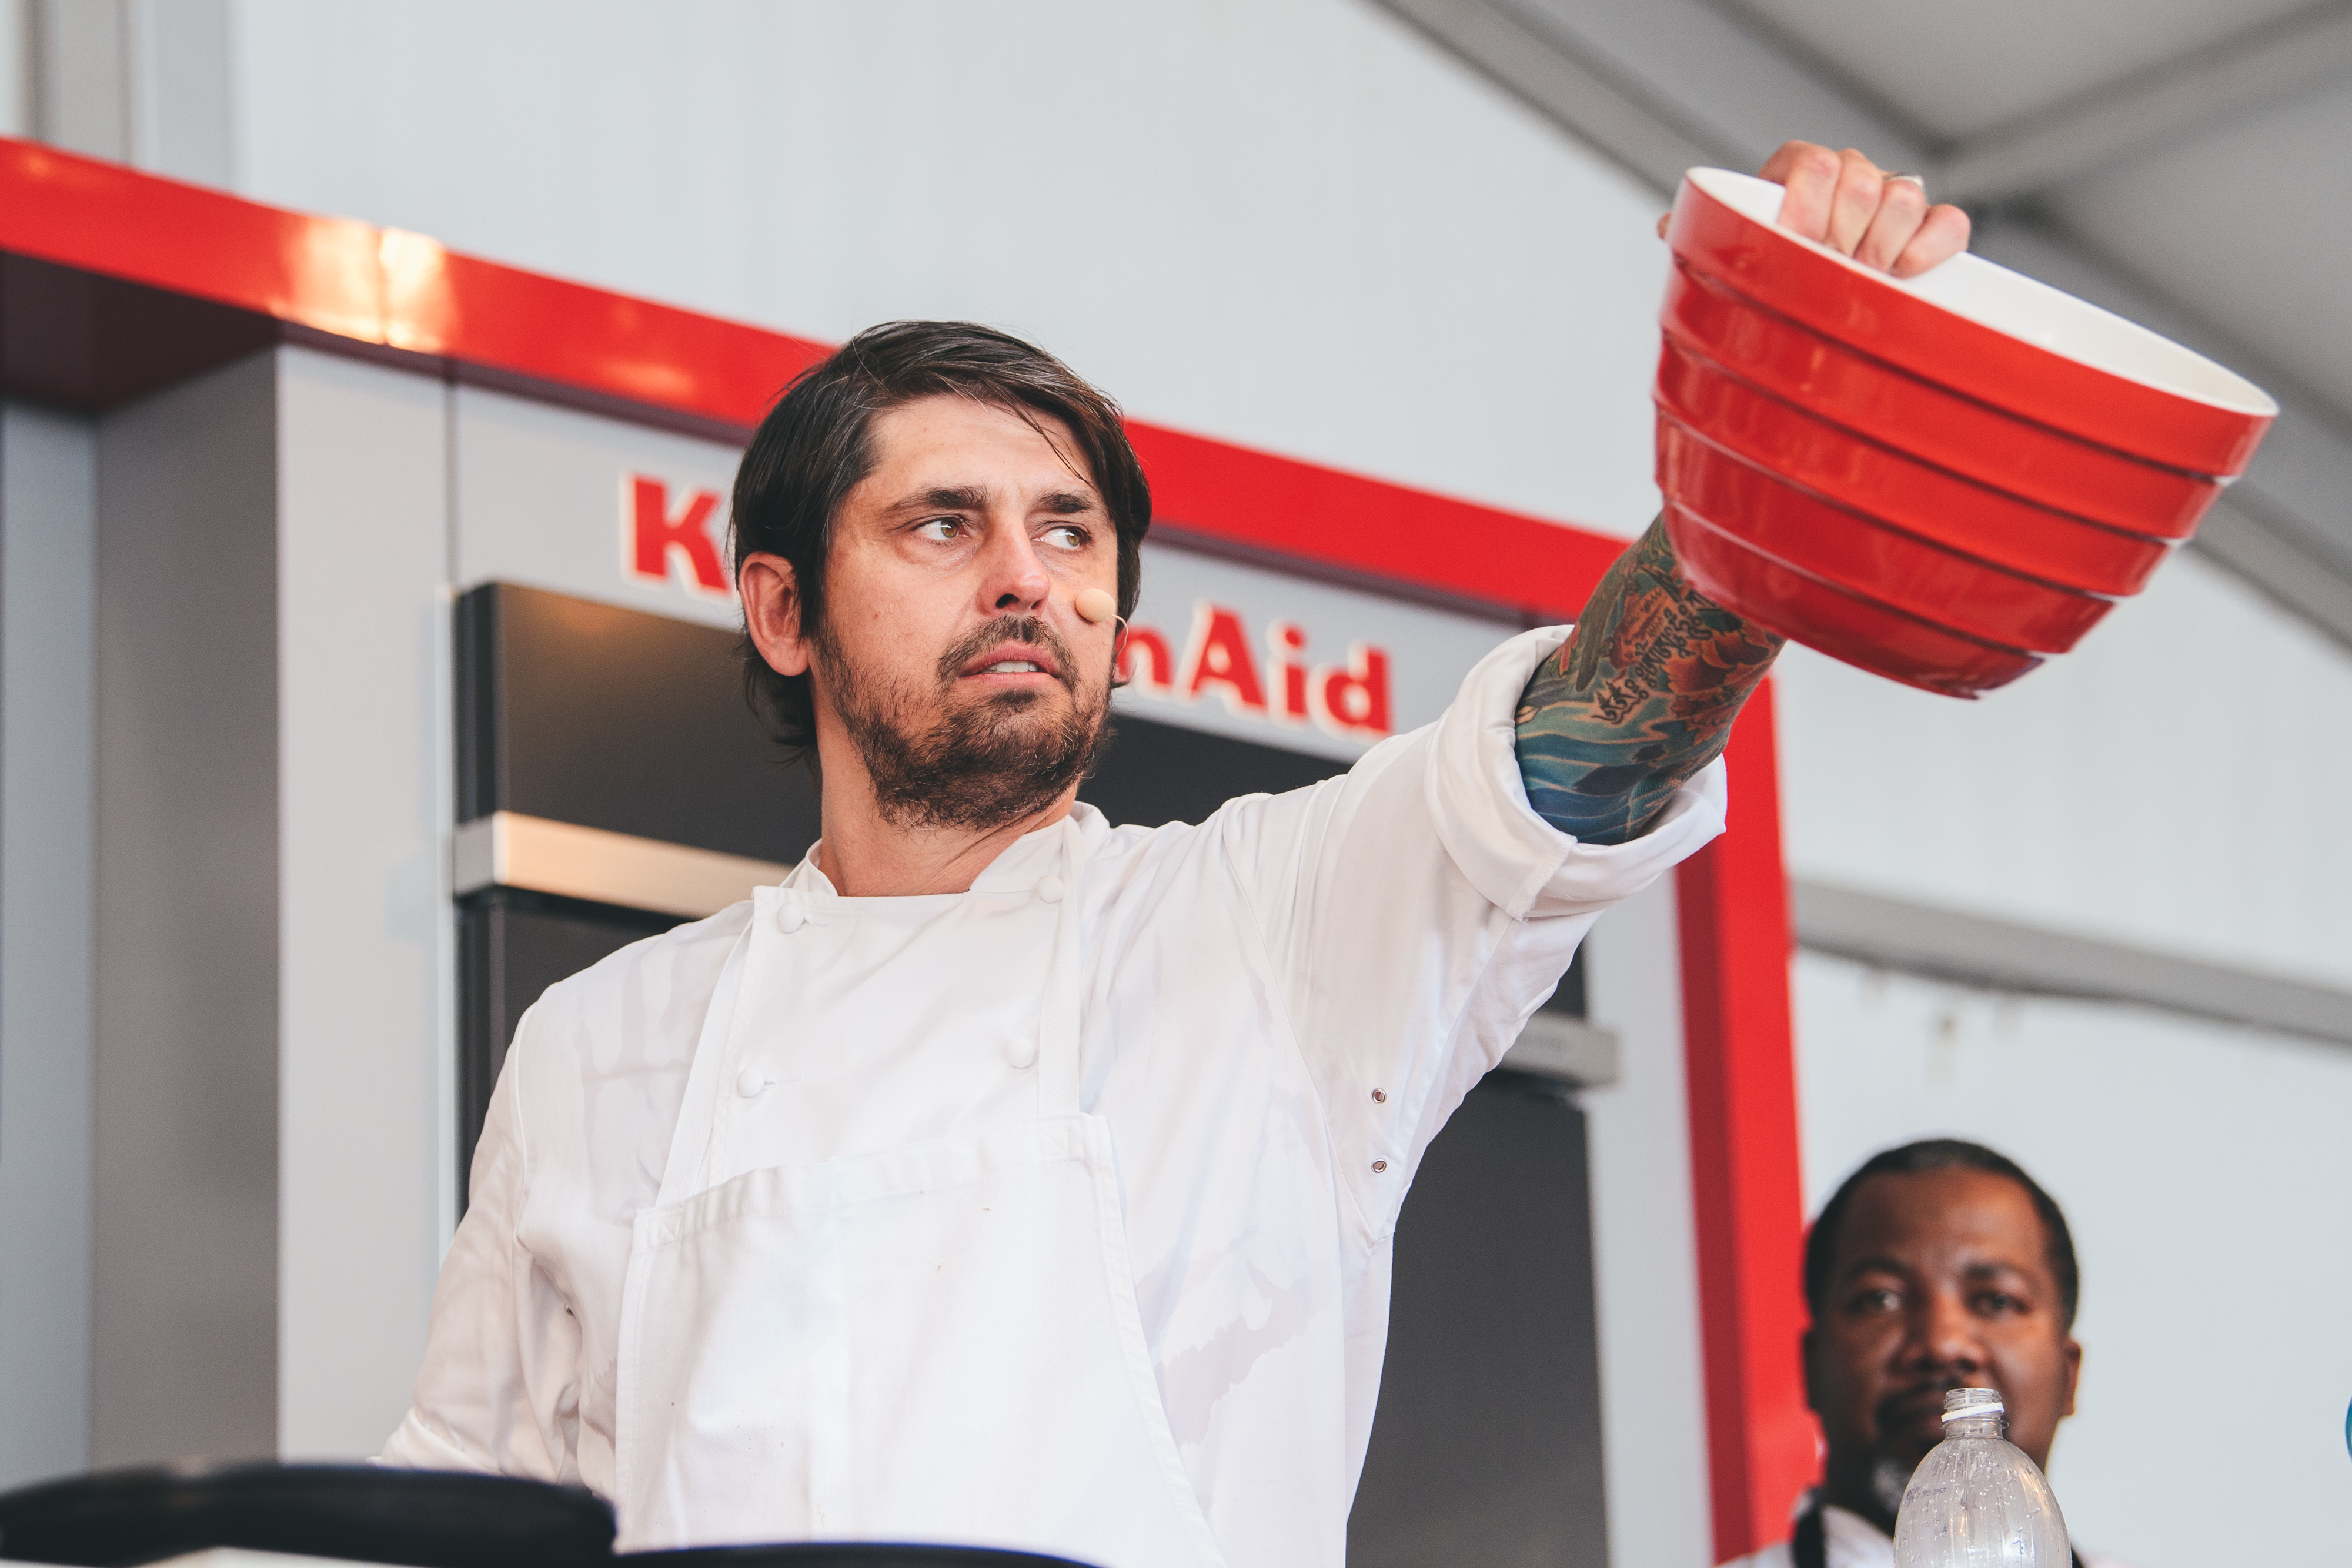 Ludo Lefevbre at Austin Food and Wine Festival earlier this year